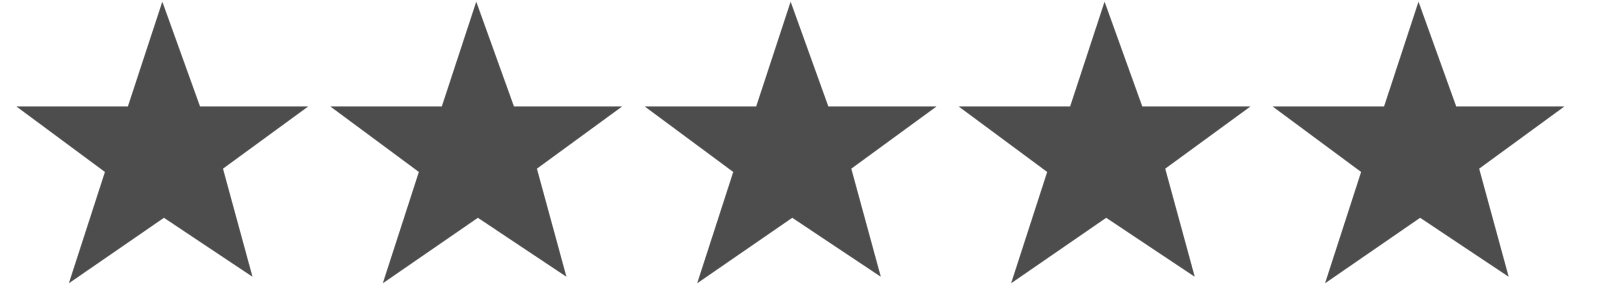 Image result for black star rating symbol